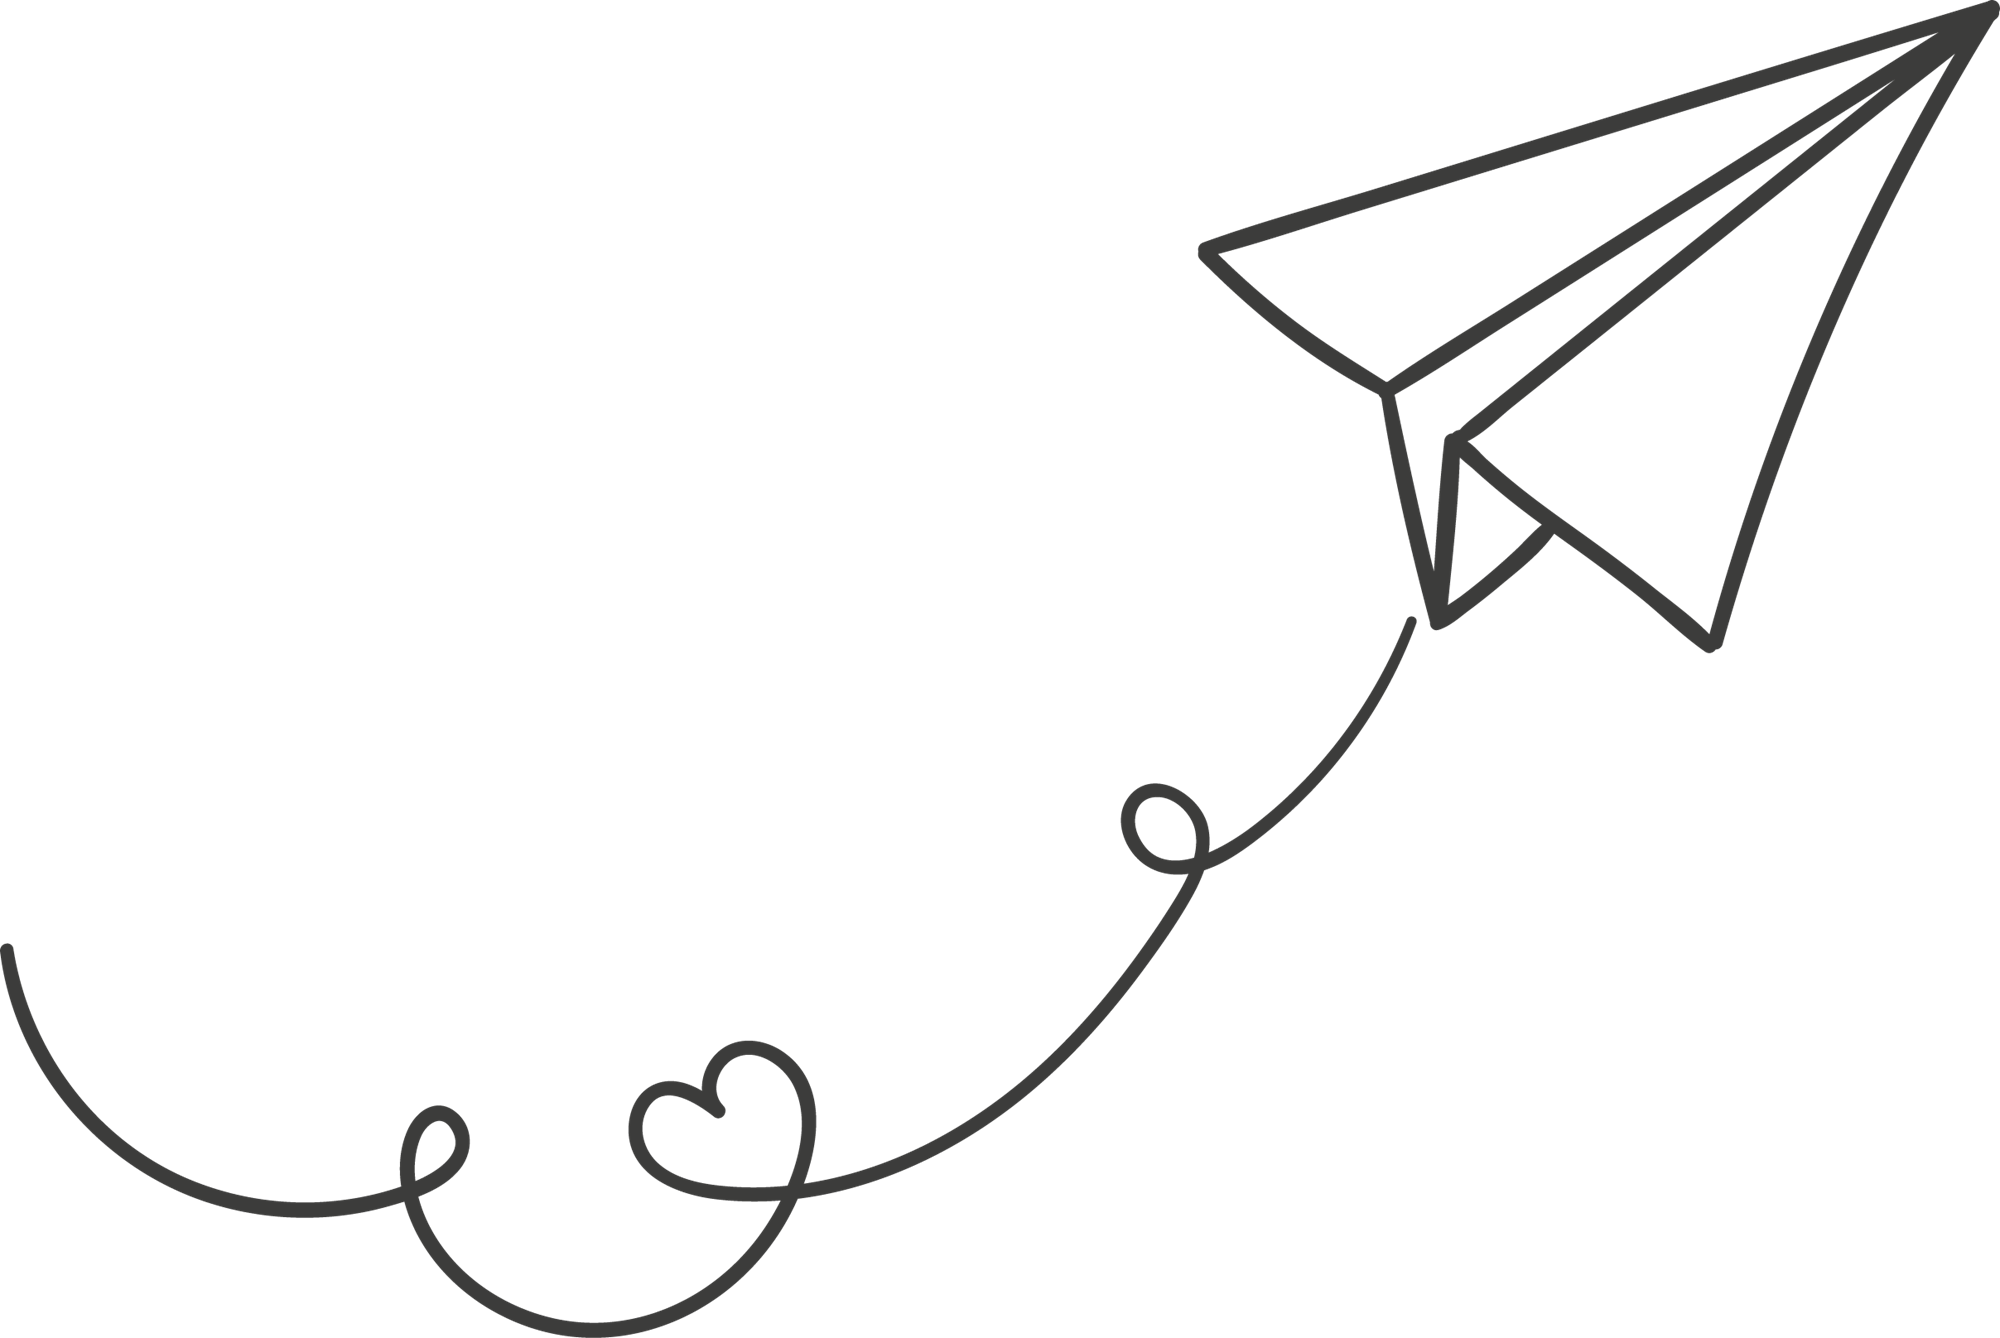 Airplane tracks clipart picture library library Pin by Udash on Clipart in 2019 | Paper plane, Paper plane tattoo ... picture library library